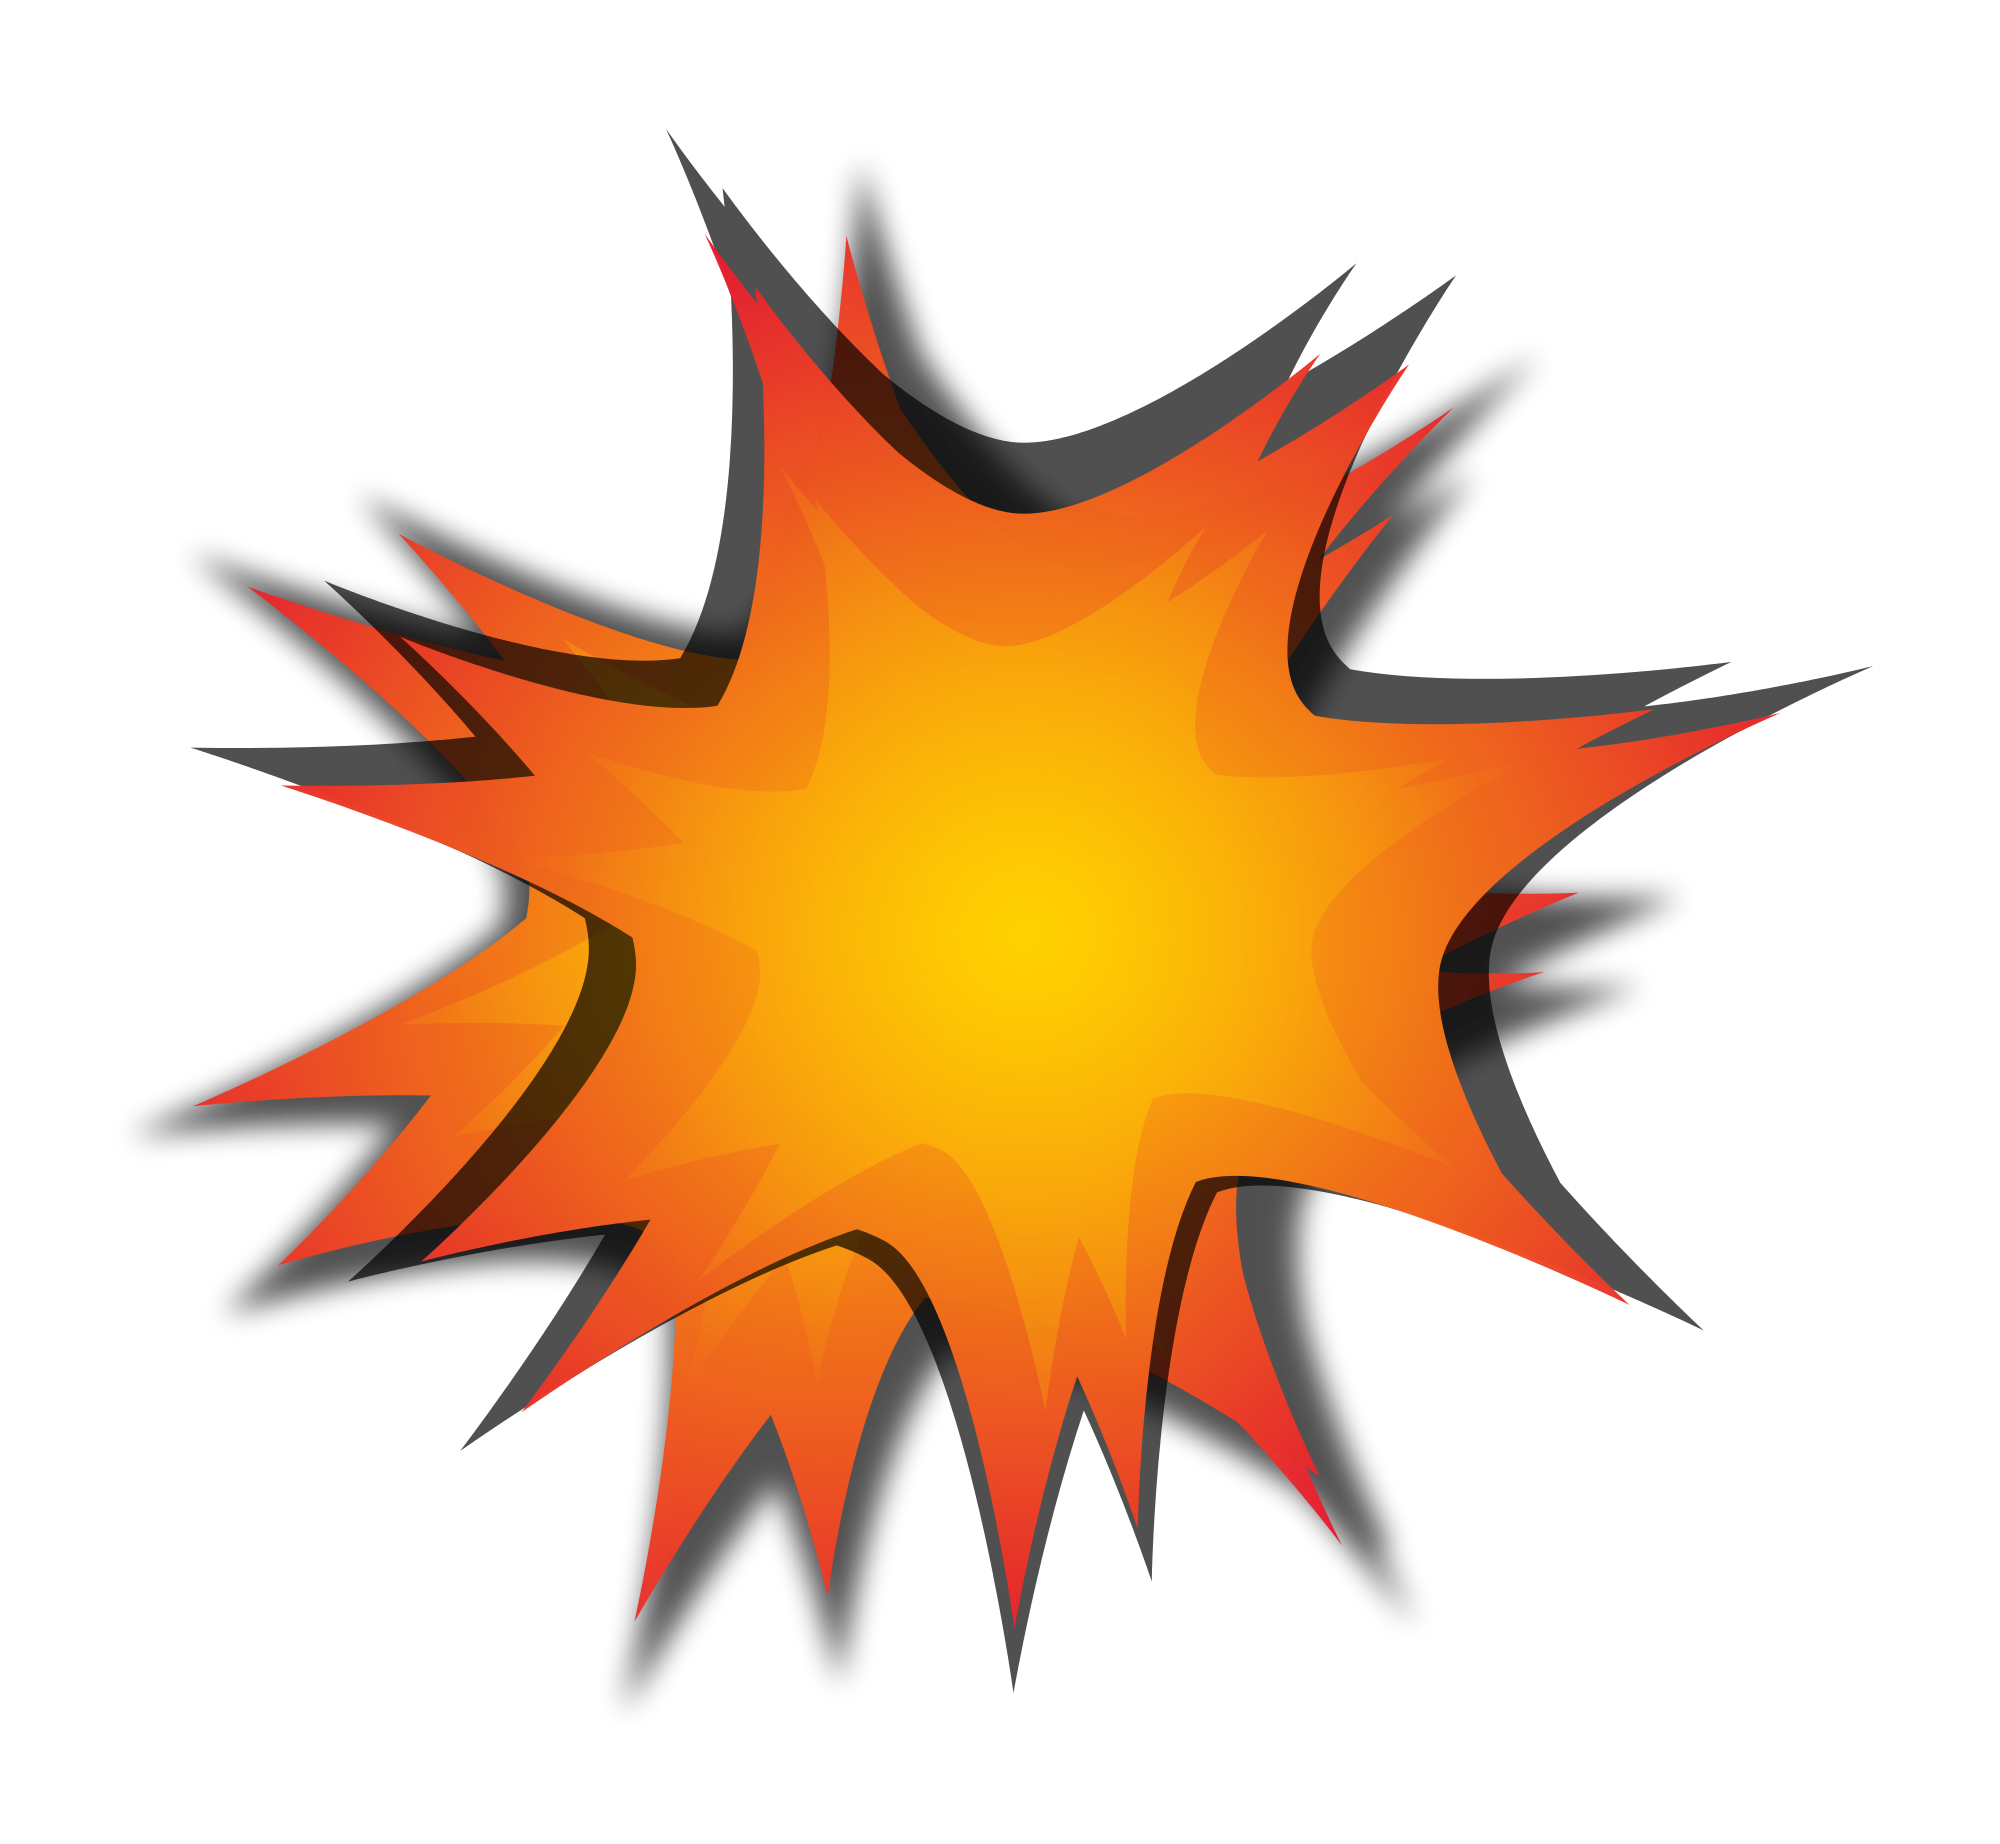 Explosion svg #16, Download drawings